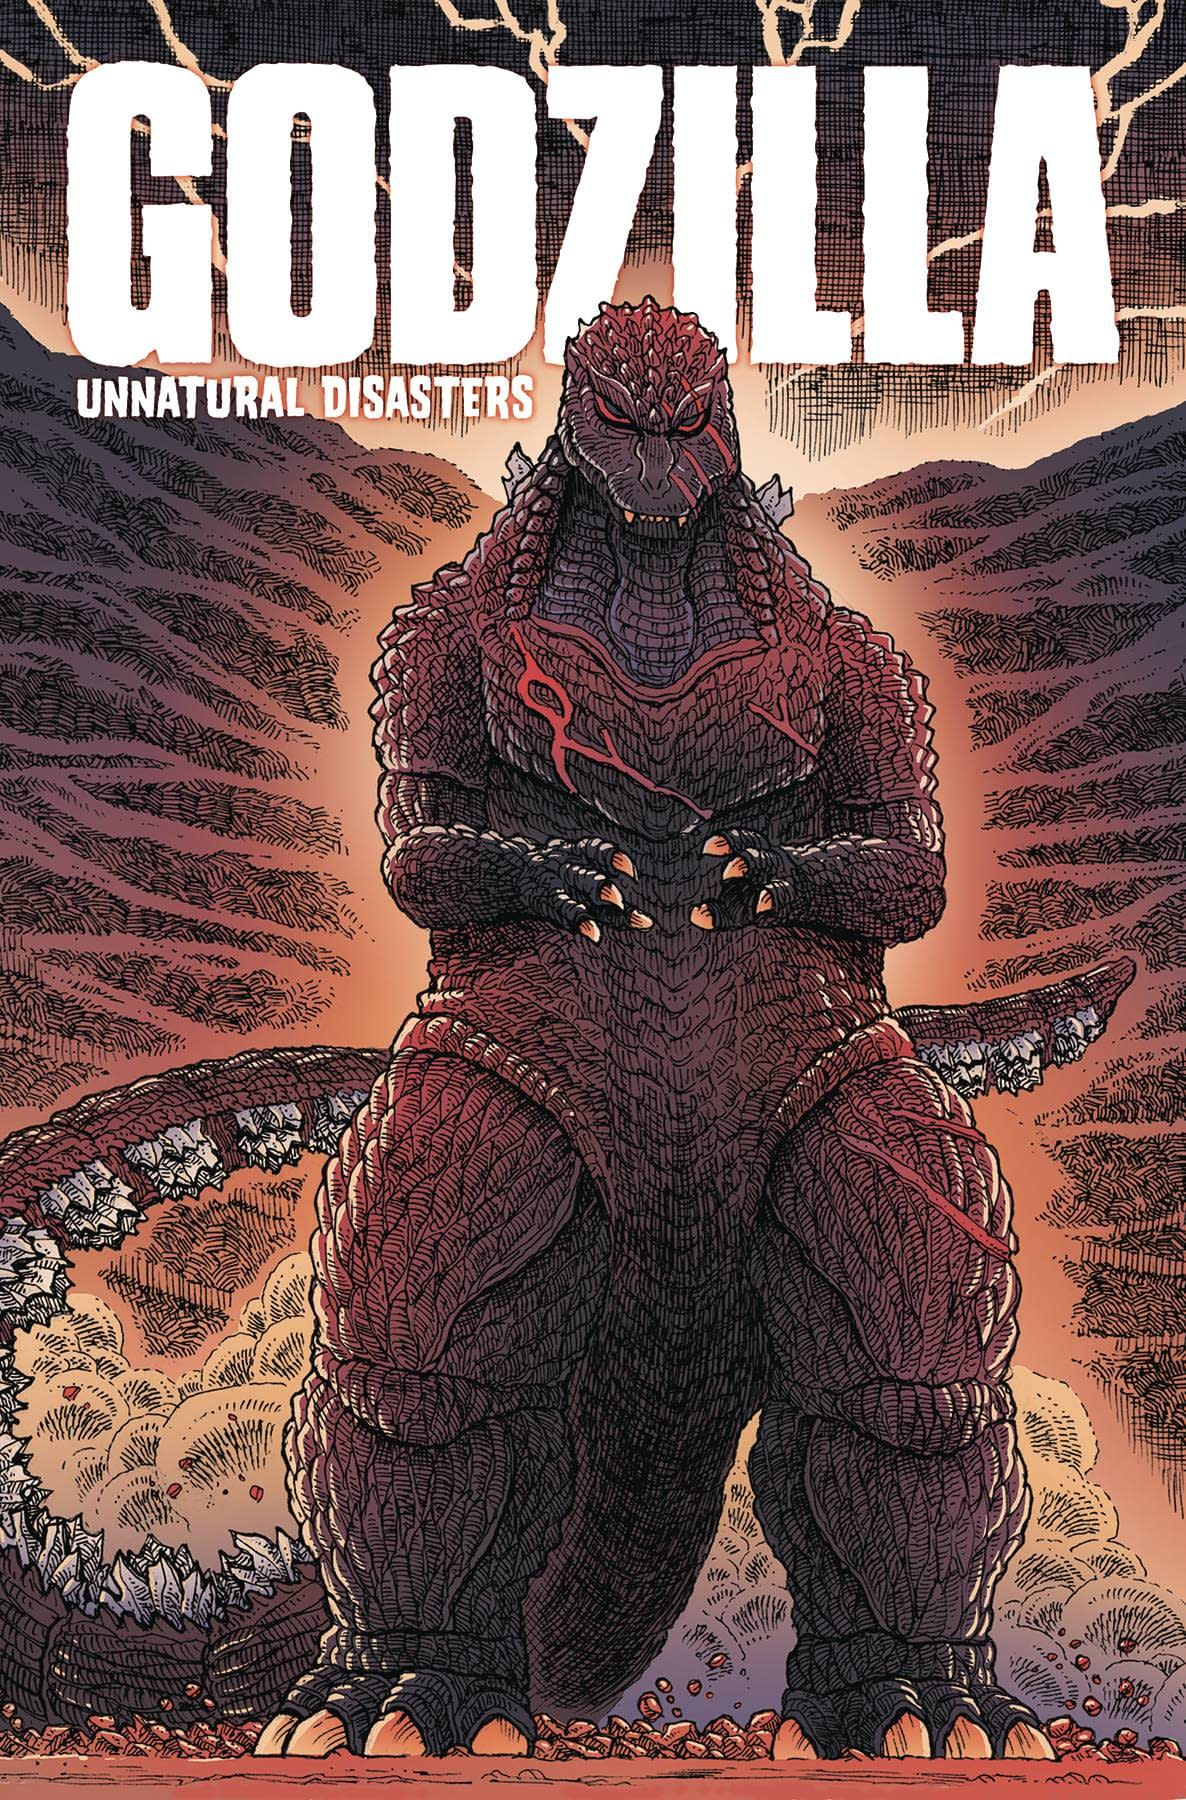 IDW Full Solicitations For March 2021 With Godzilla, Disney & GI Joe GODZILLA UNNATURAL DISASTERS TP